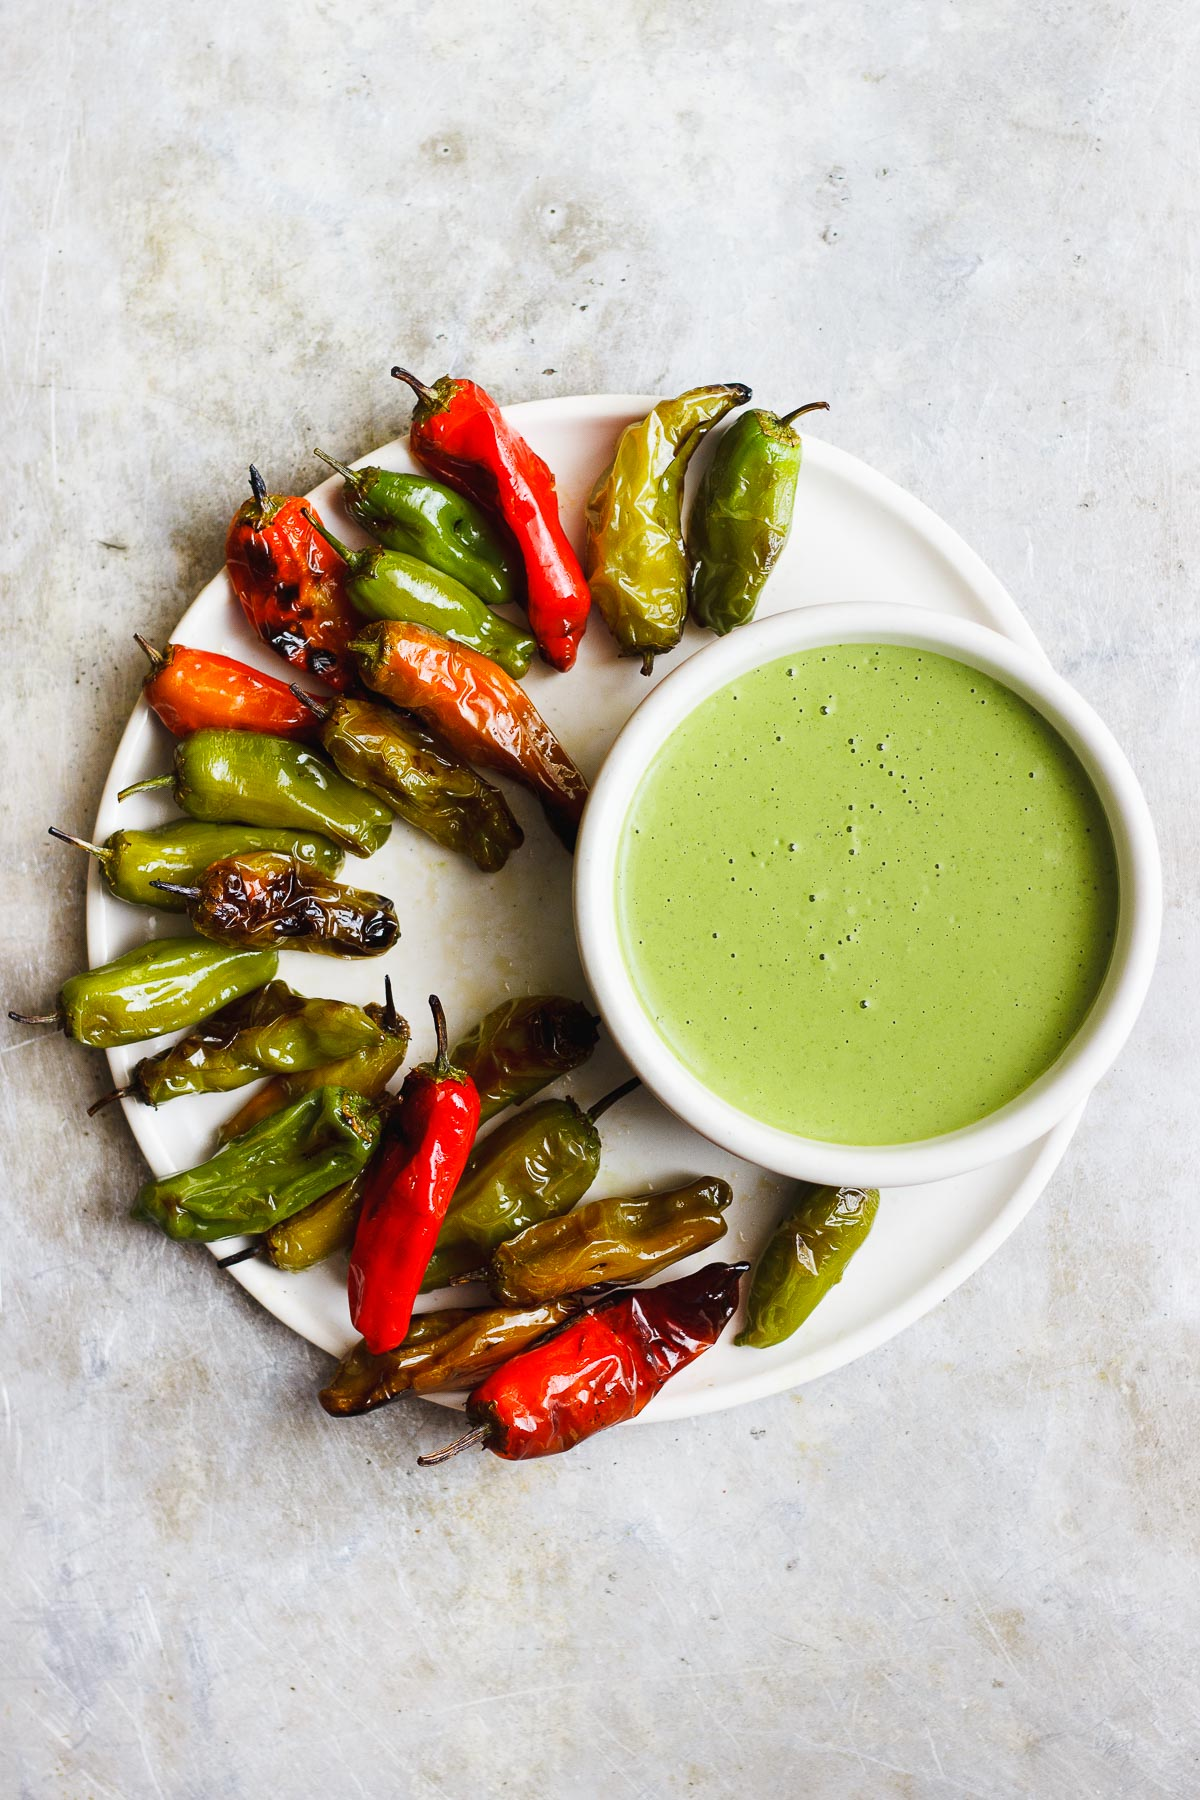 BLISTERED SHISHITO PEPPERS WITH CILANTRO LIME DIPPING SAUCE